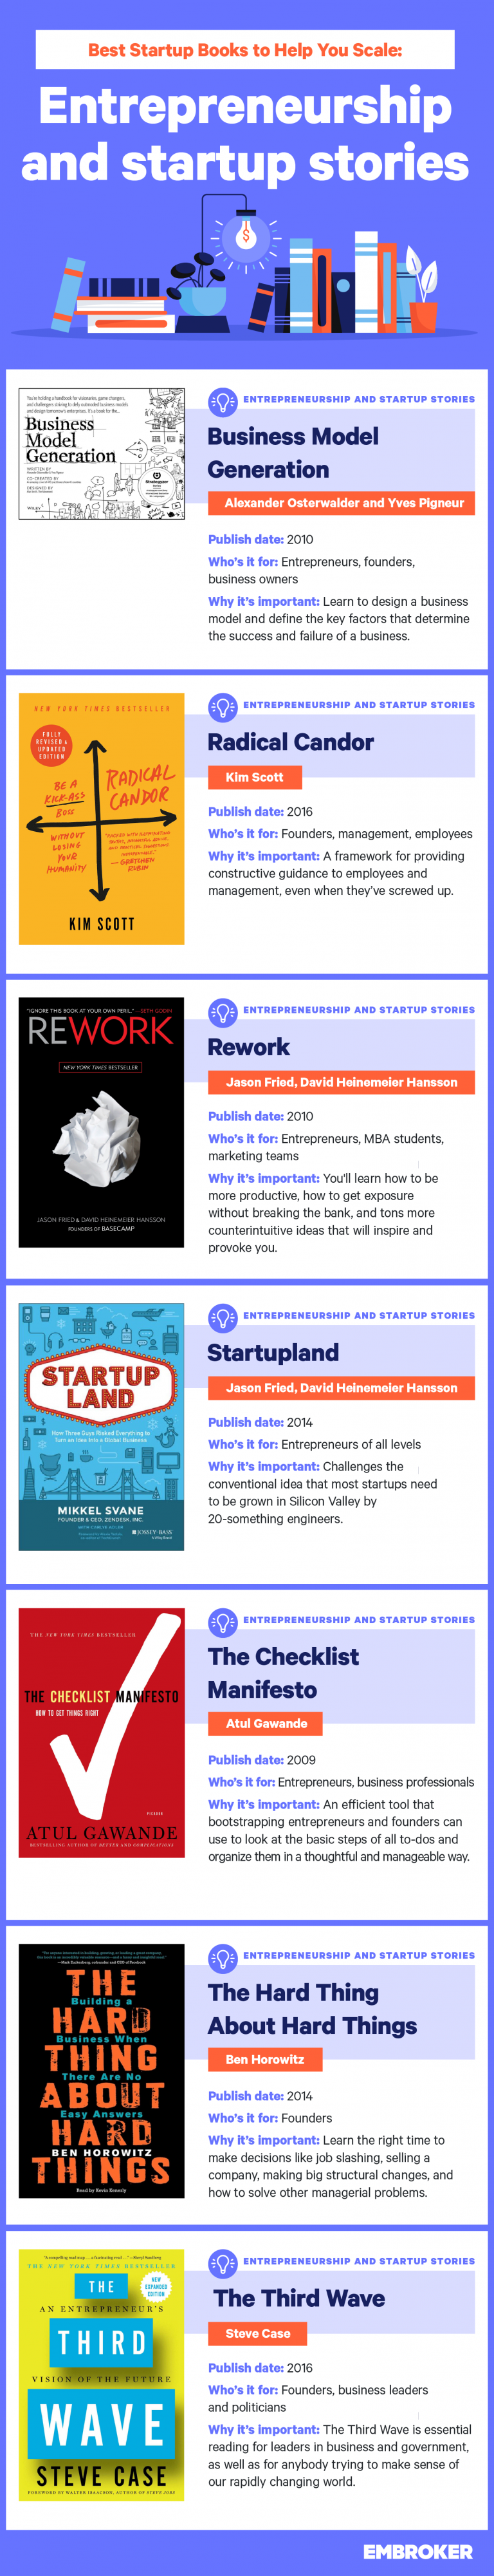 Infographic of IG-Entrepreneurship-and-Startup-Stories by Aurora Meyer